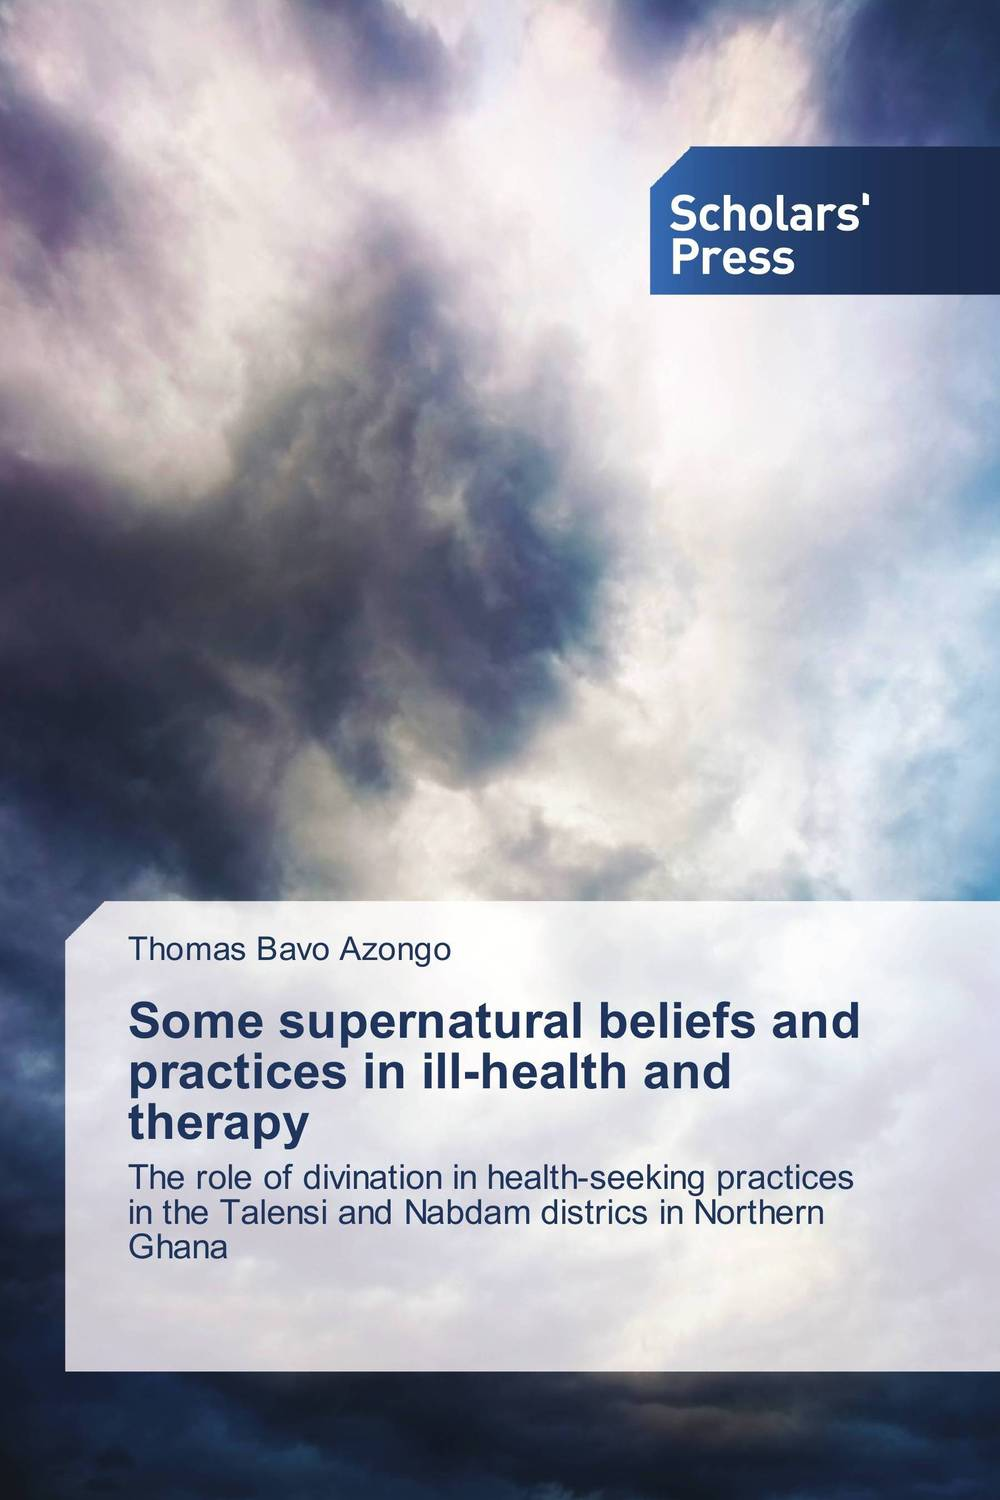 Some supernatural beliefs and practices in ill-health and therapy marco zolow spirituality in health and wellness practices of older adults